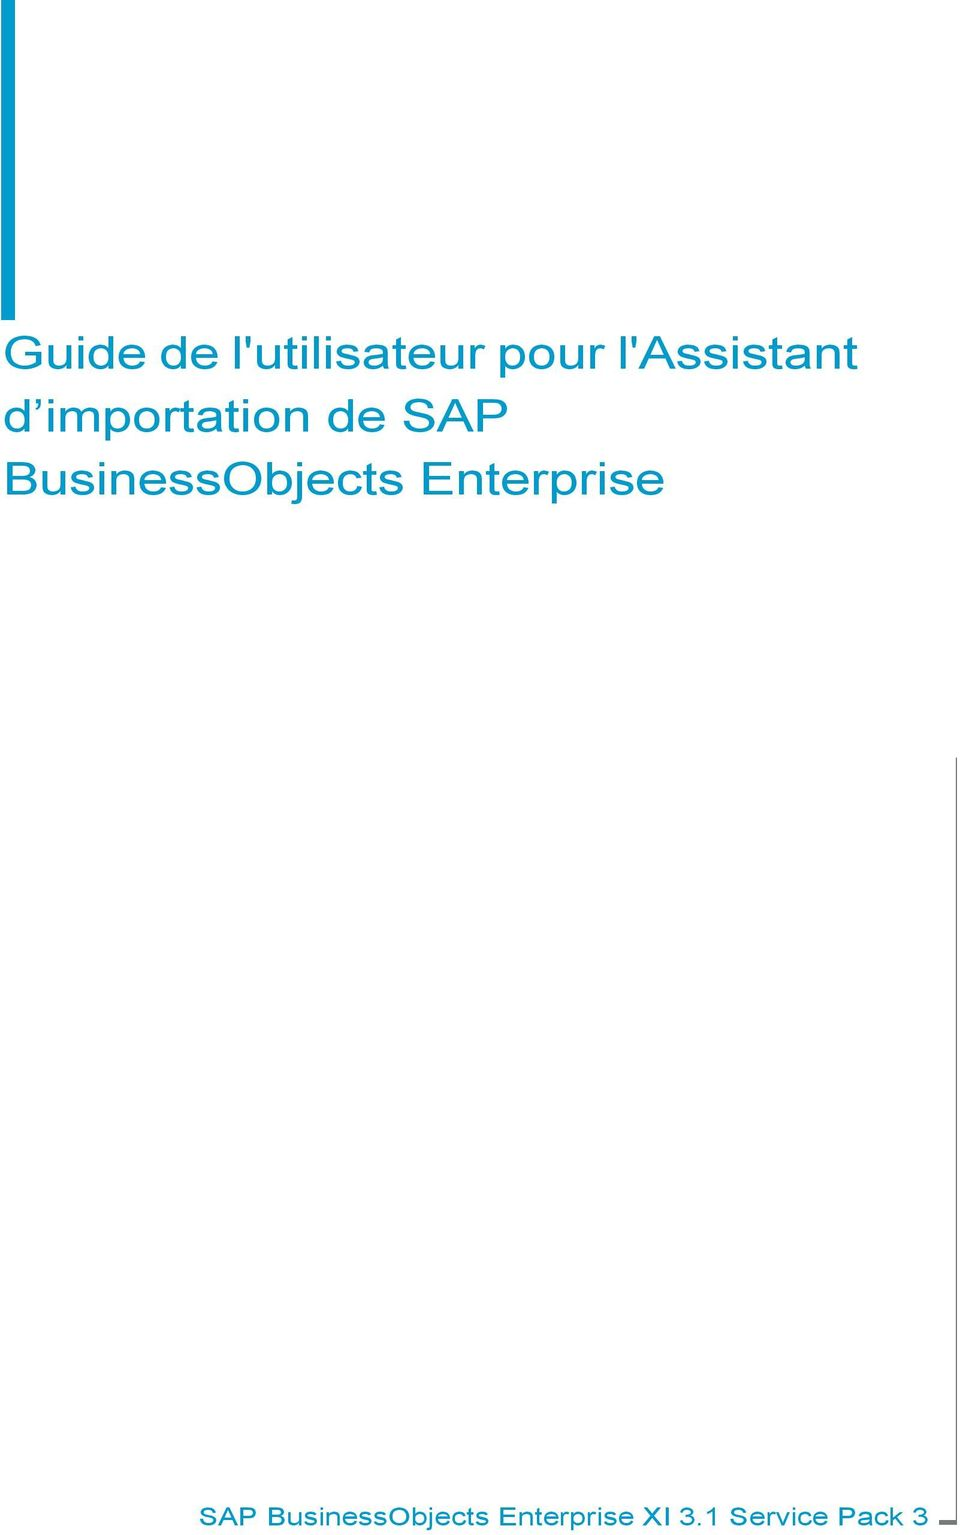 BusinessObjects Enterprise SAP